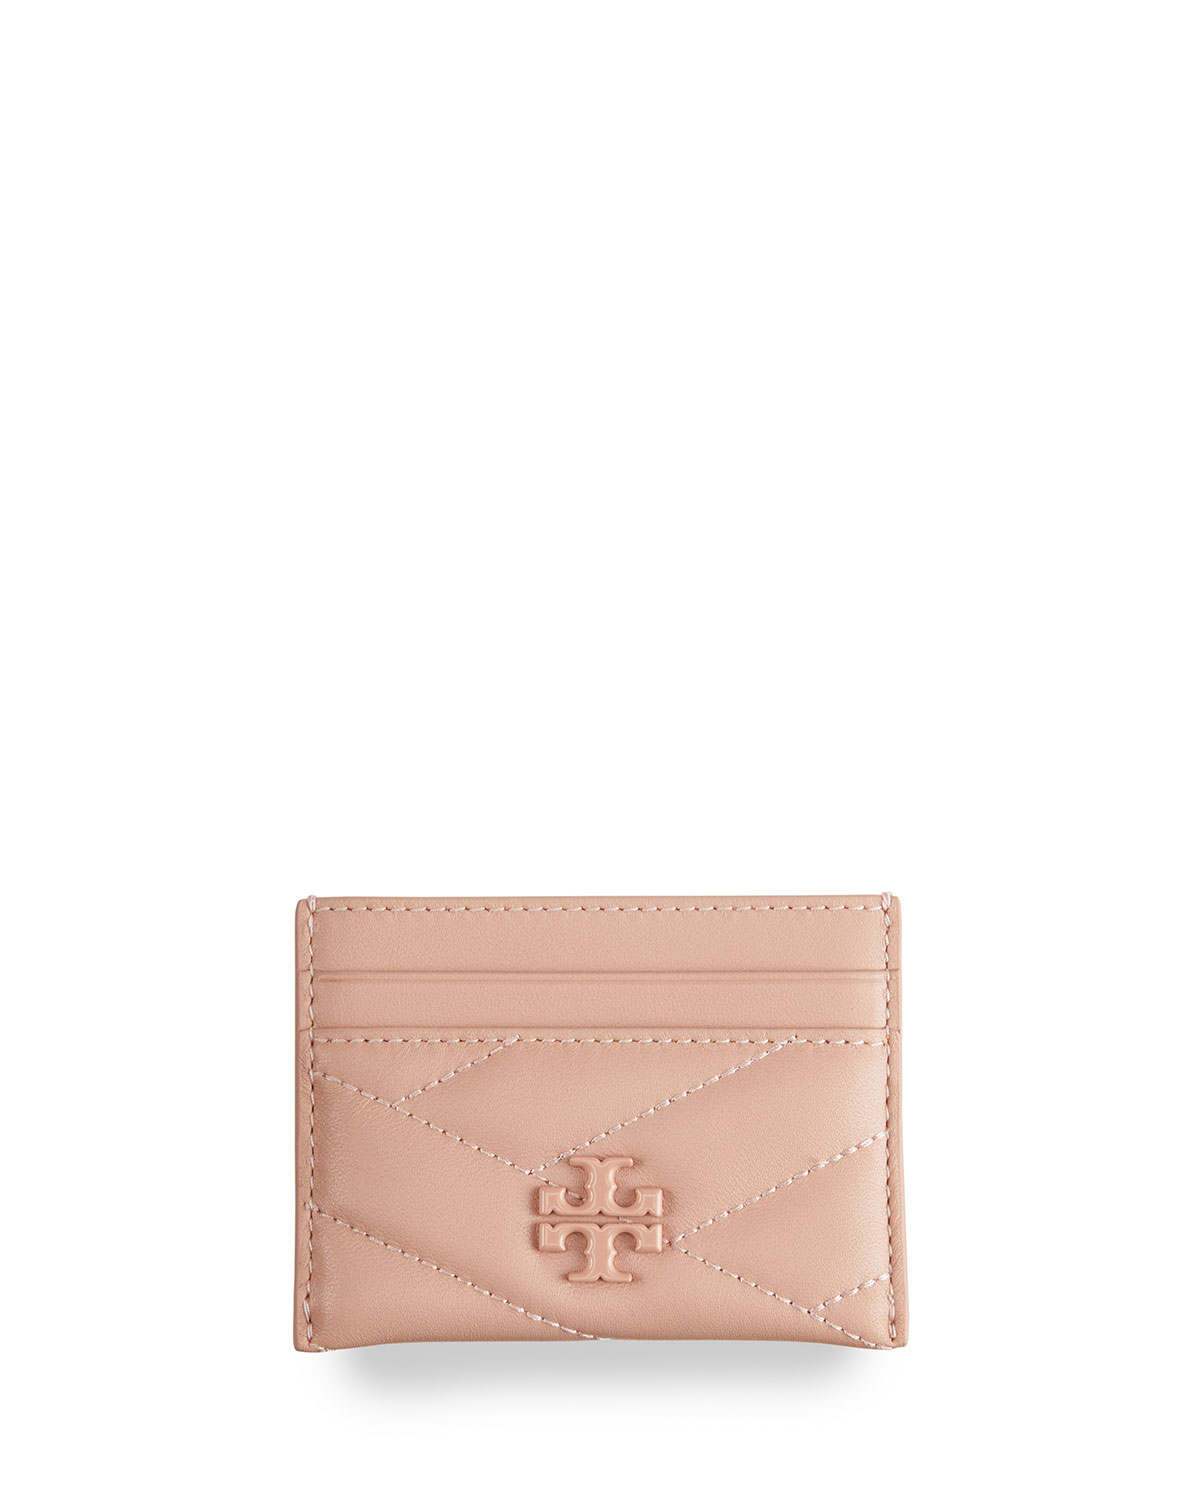 Tory Burch Leathers KIRA QUILTED LOGO CARD CASE